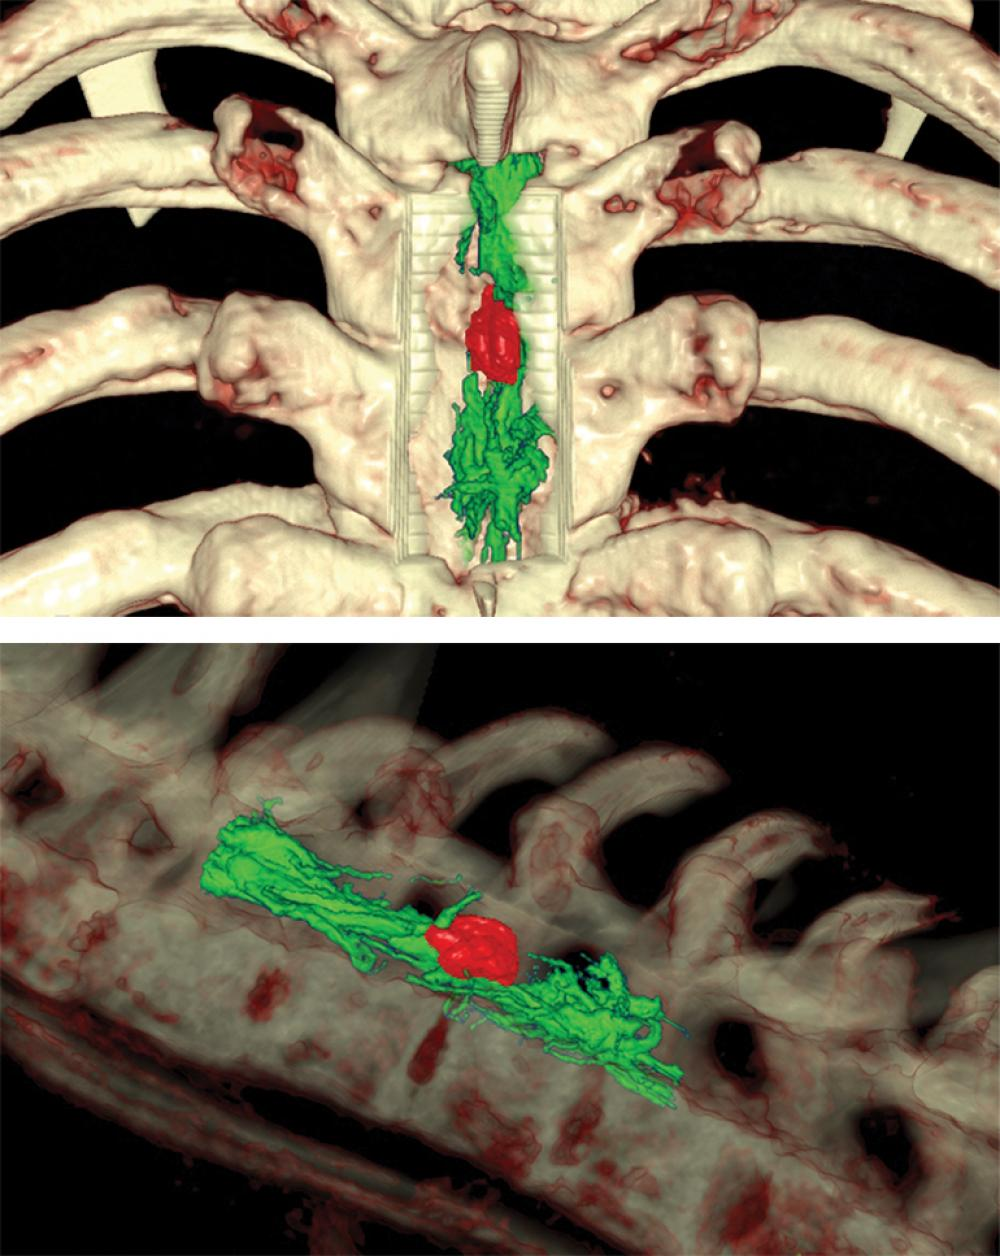 Three-dimensional Imaging of the Intradural Intramedullary Cavernoma